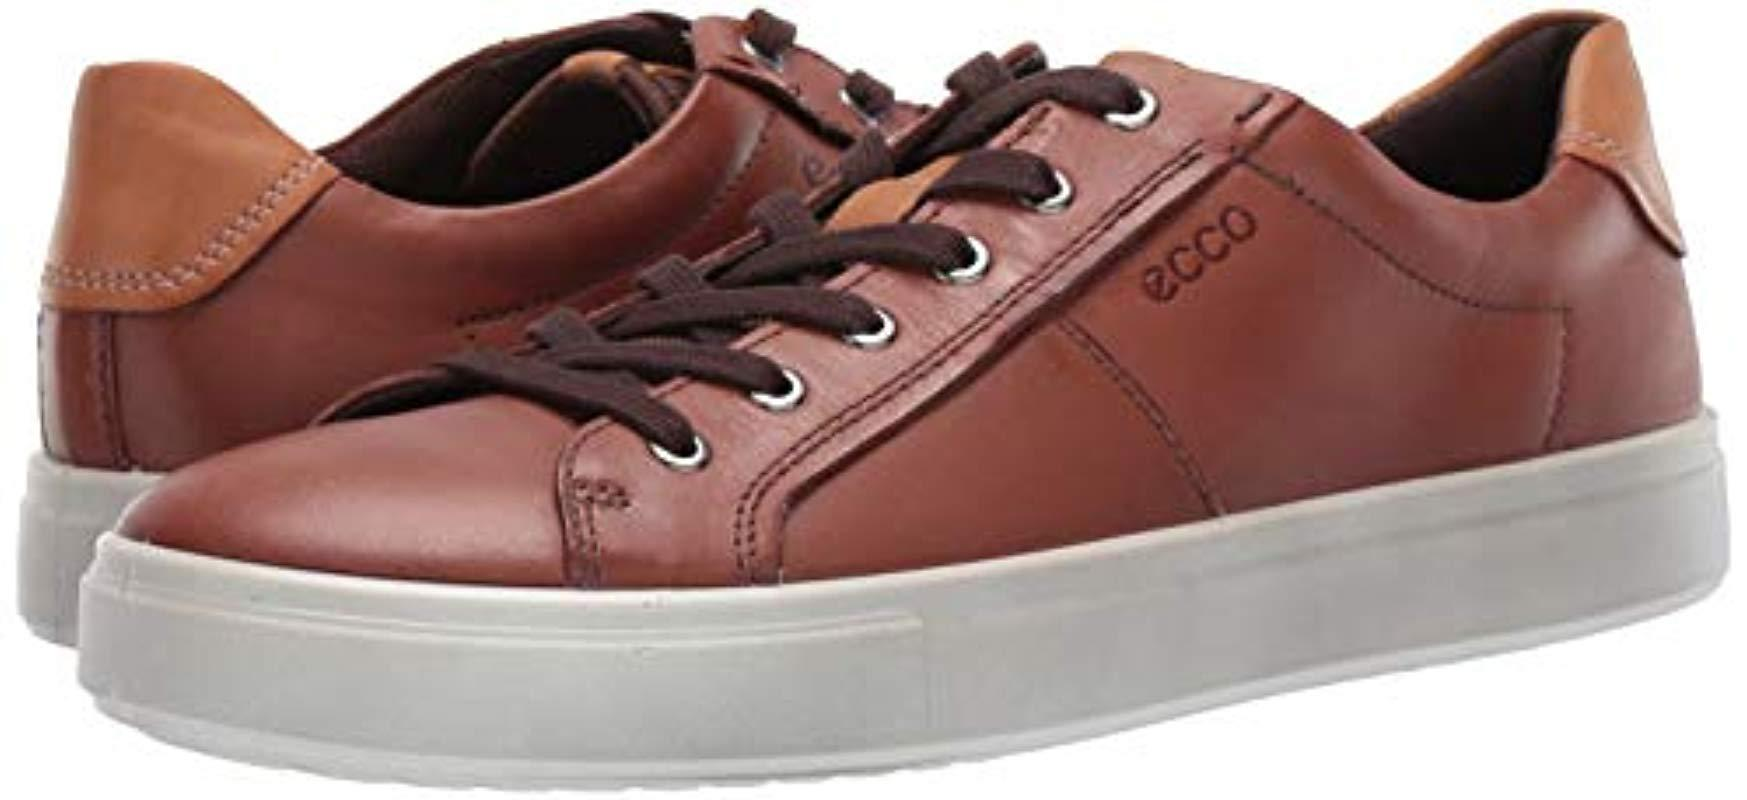 Ecco Leather Kyle Classic Sneaker for